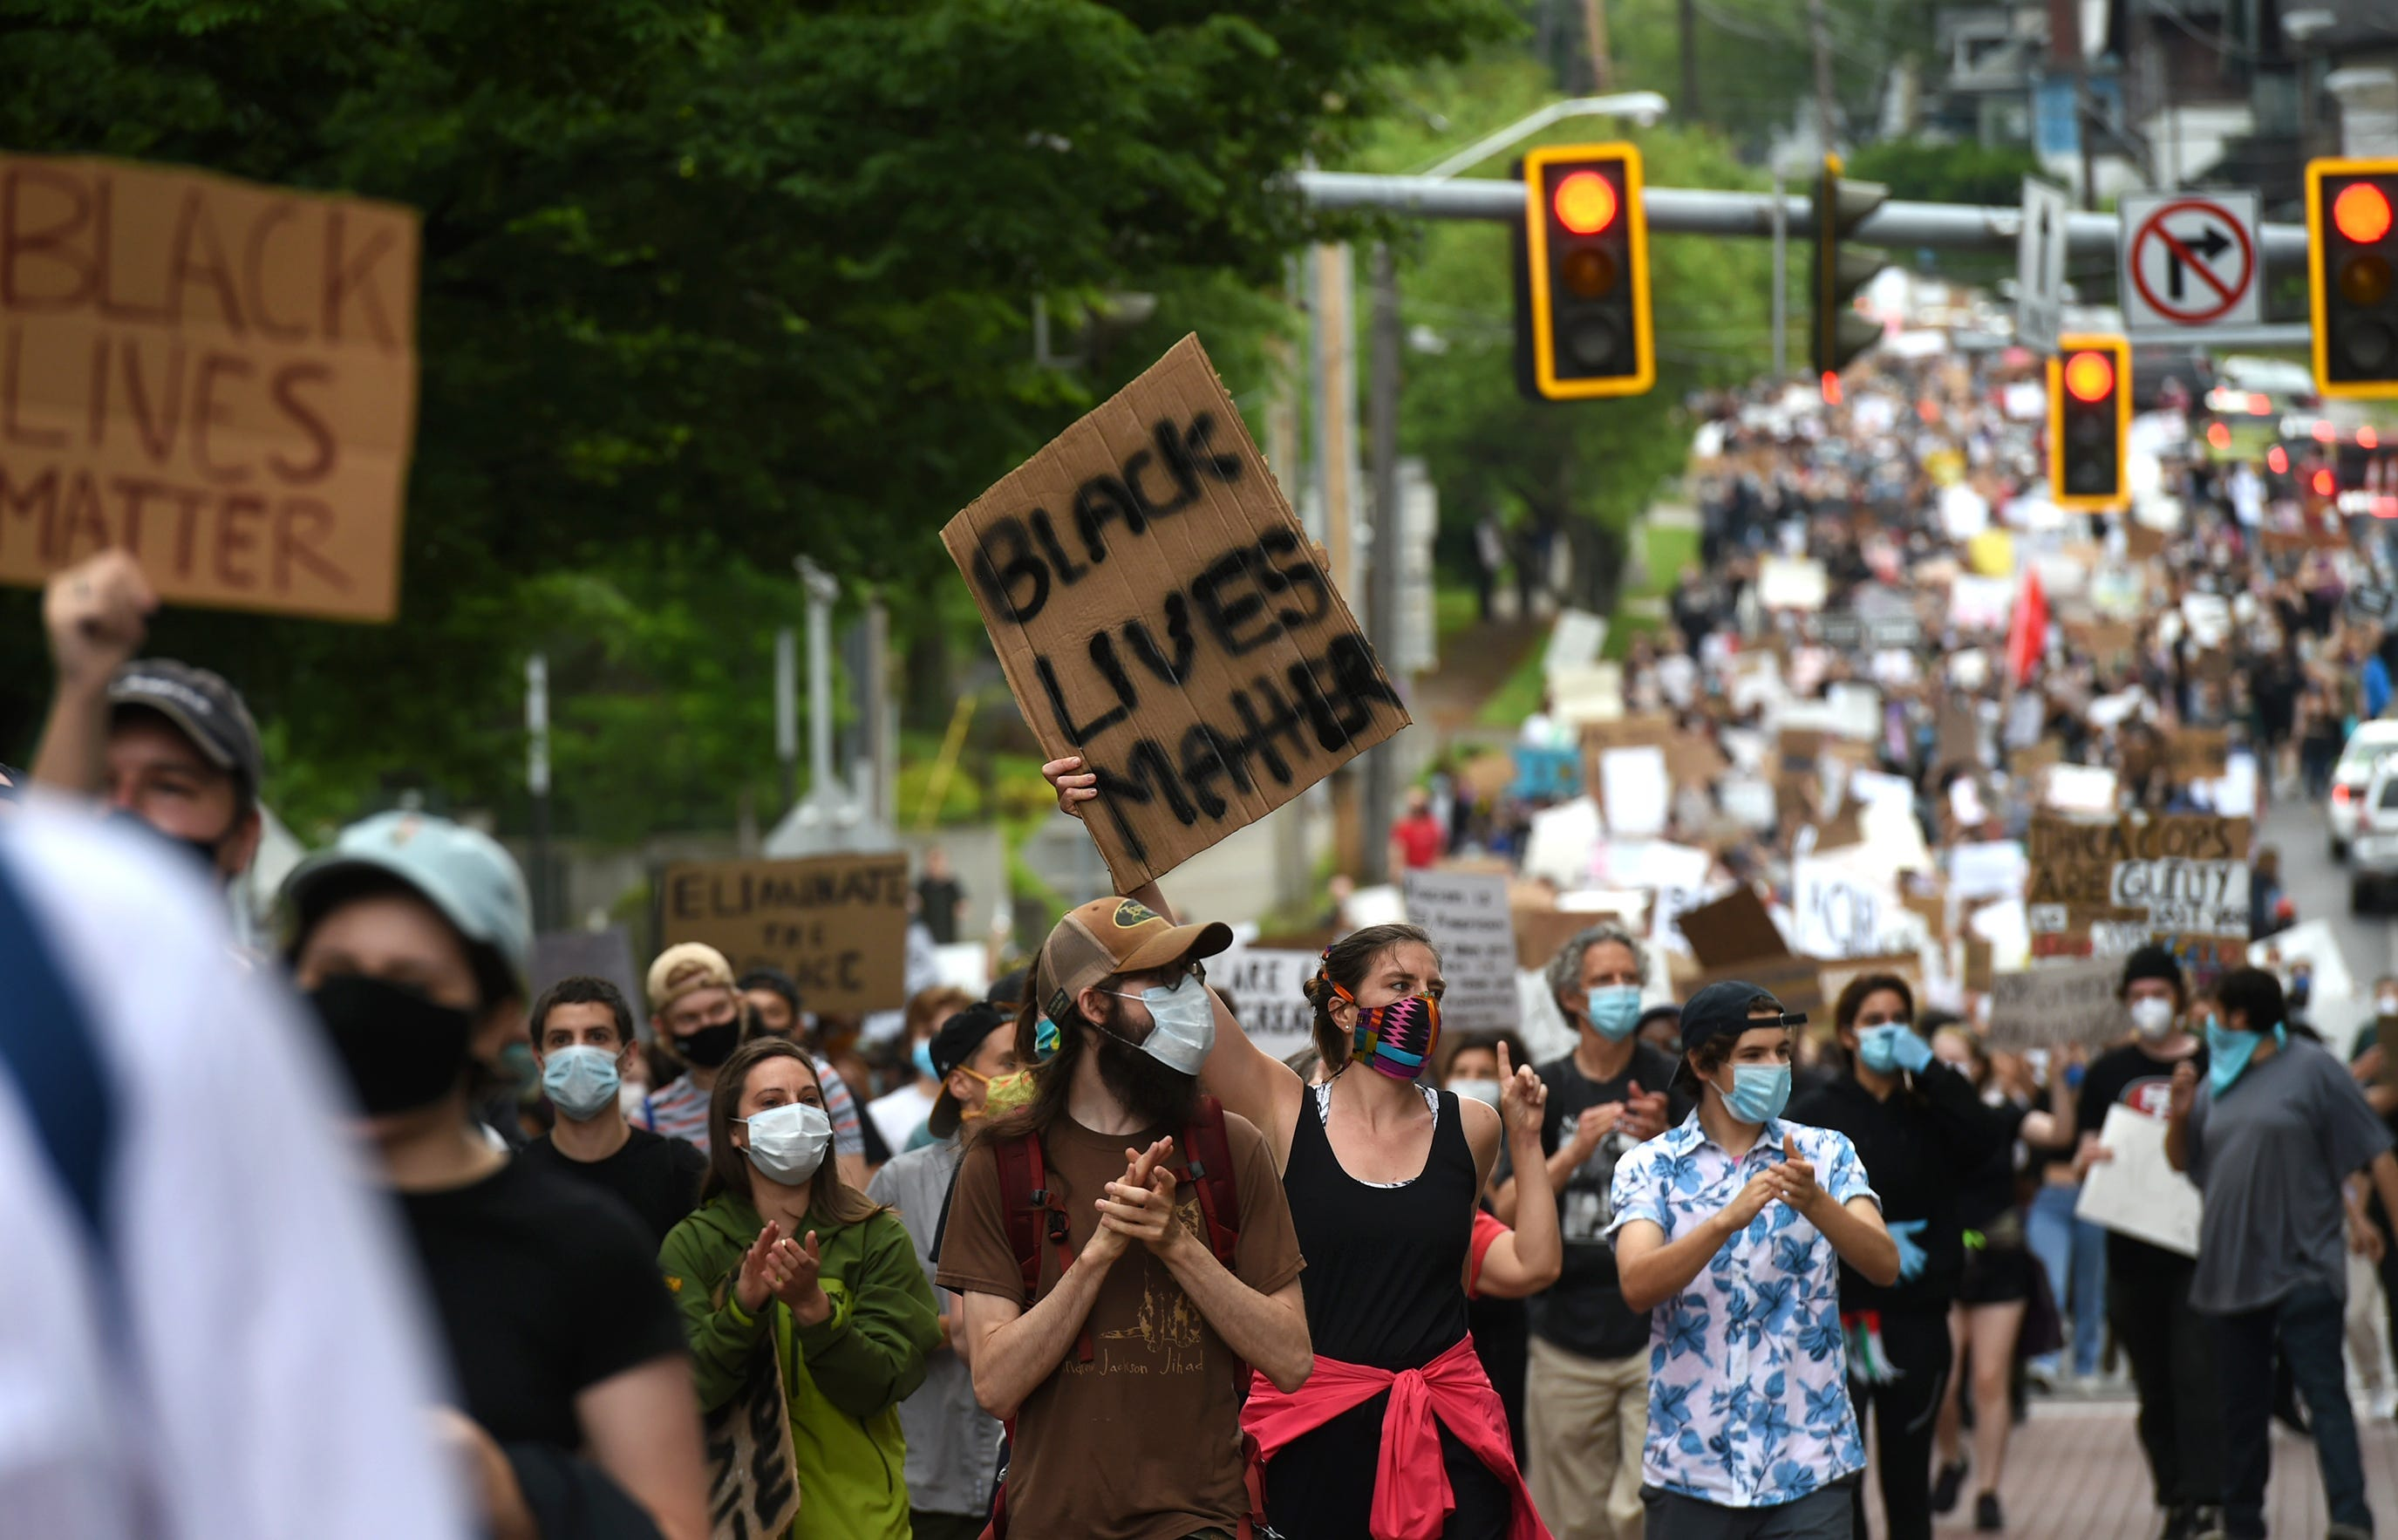 Hundreds of protesters march down astreet in Ithaca, N.Y., as part of the March 4 Floyd, a peaceful protest against police brutality and systematic oppression on Wednesday, June 3, 2020.